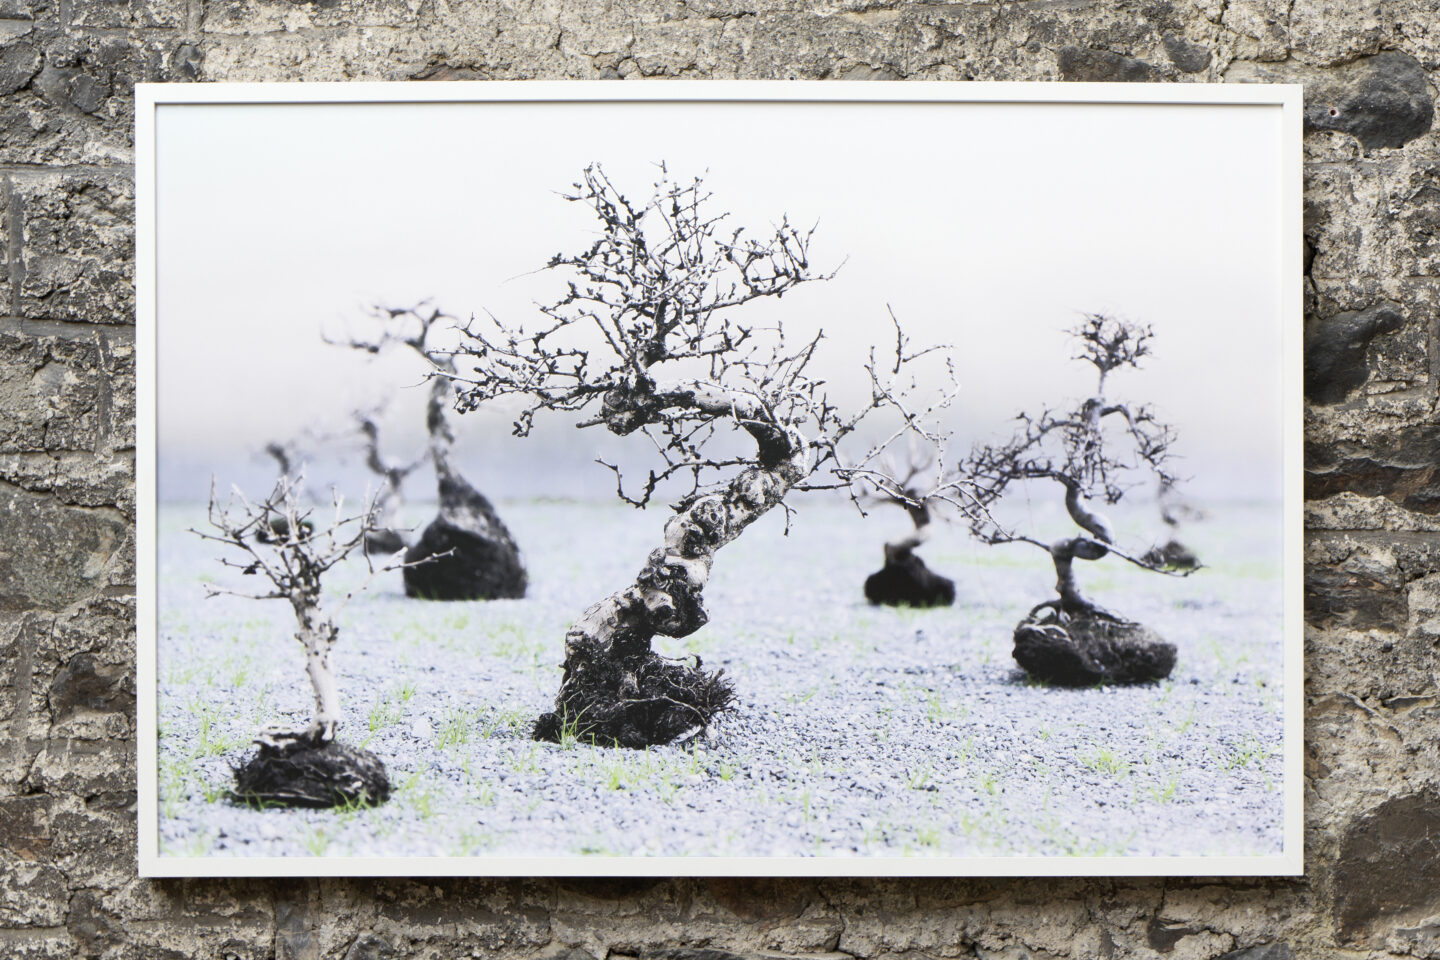 Exhibition View Groupshow «Absolutely Tschudi; view on Su-Mei Tse, Trees & Roots #2 (in collaboraton with Jean-Lou Majerus), 2011» at Galerie Tschudi, Zuoz, 2019 / Photo: Ralph Feiner, Malans / Courtesy: the artists and Galerie Tschudi, Zuoz